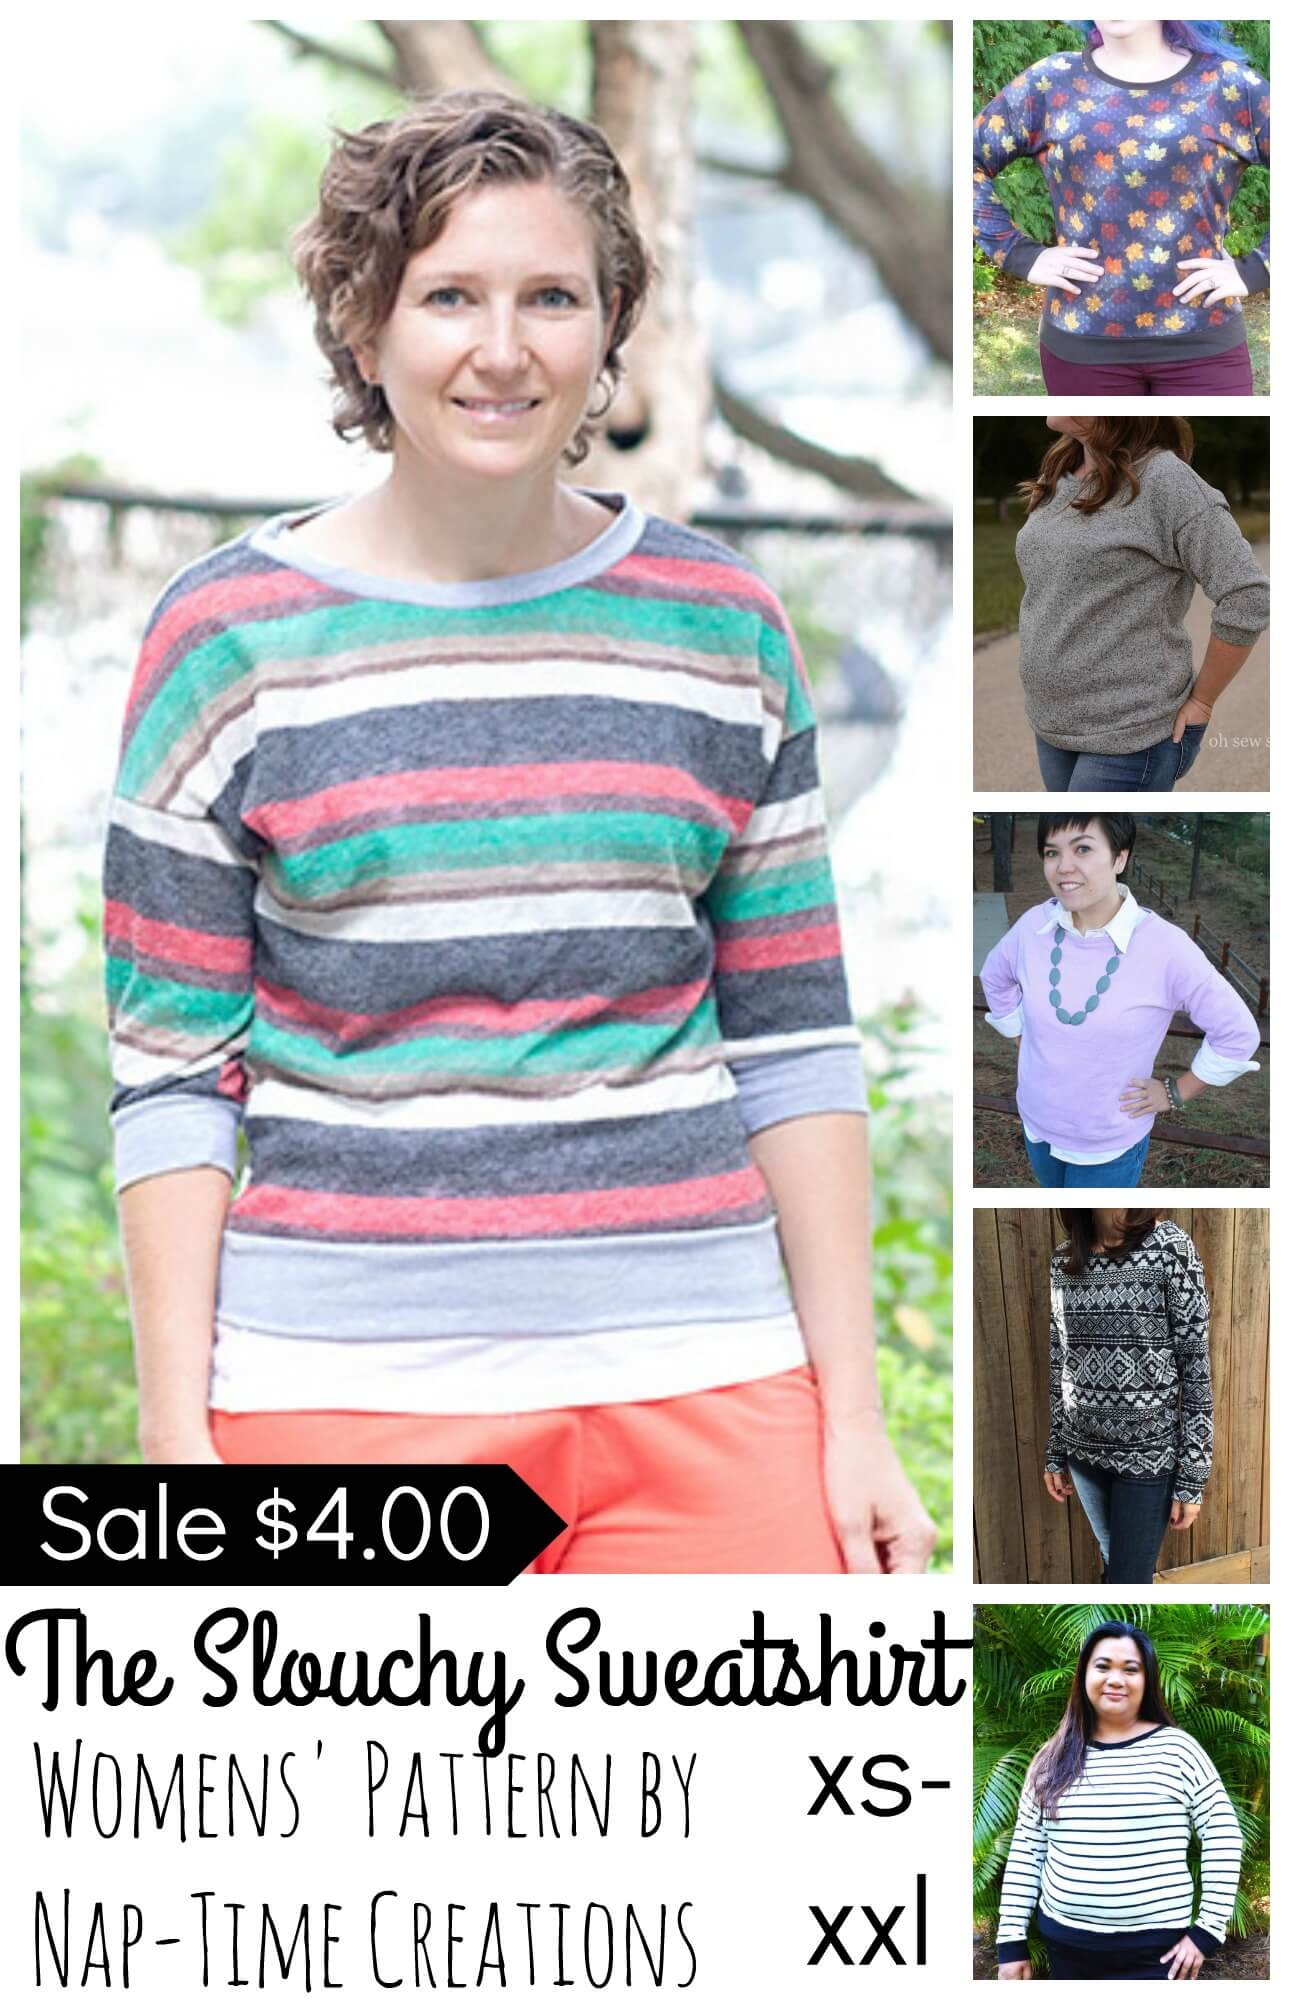 Slouchy Sweatshirt sale Collage